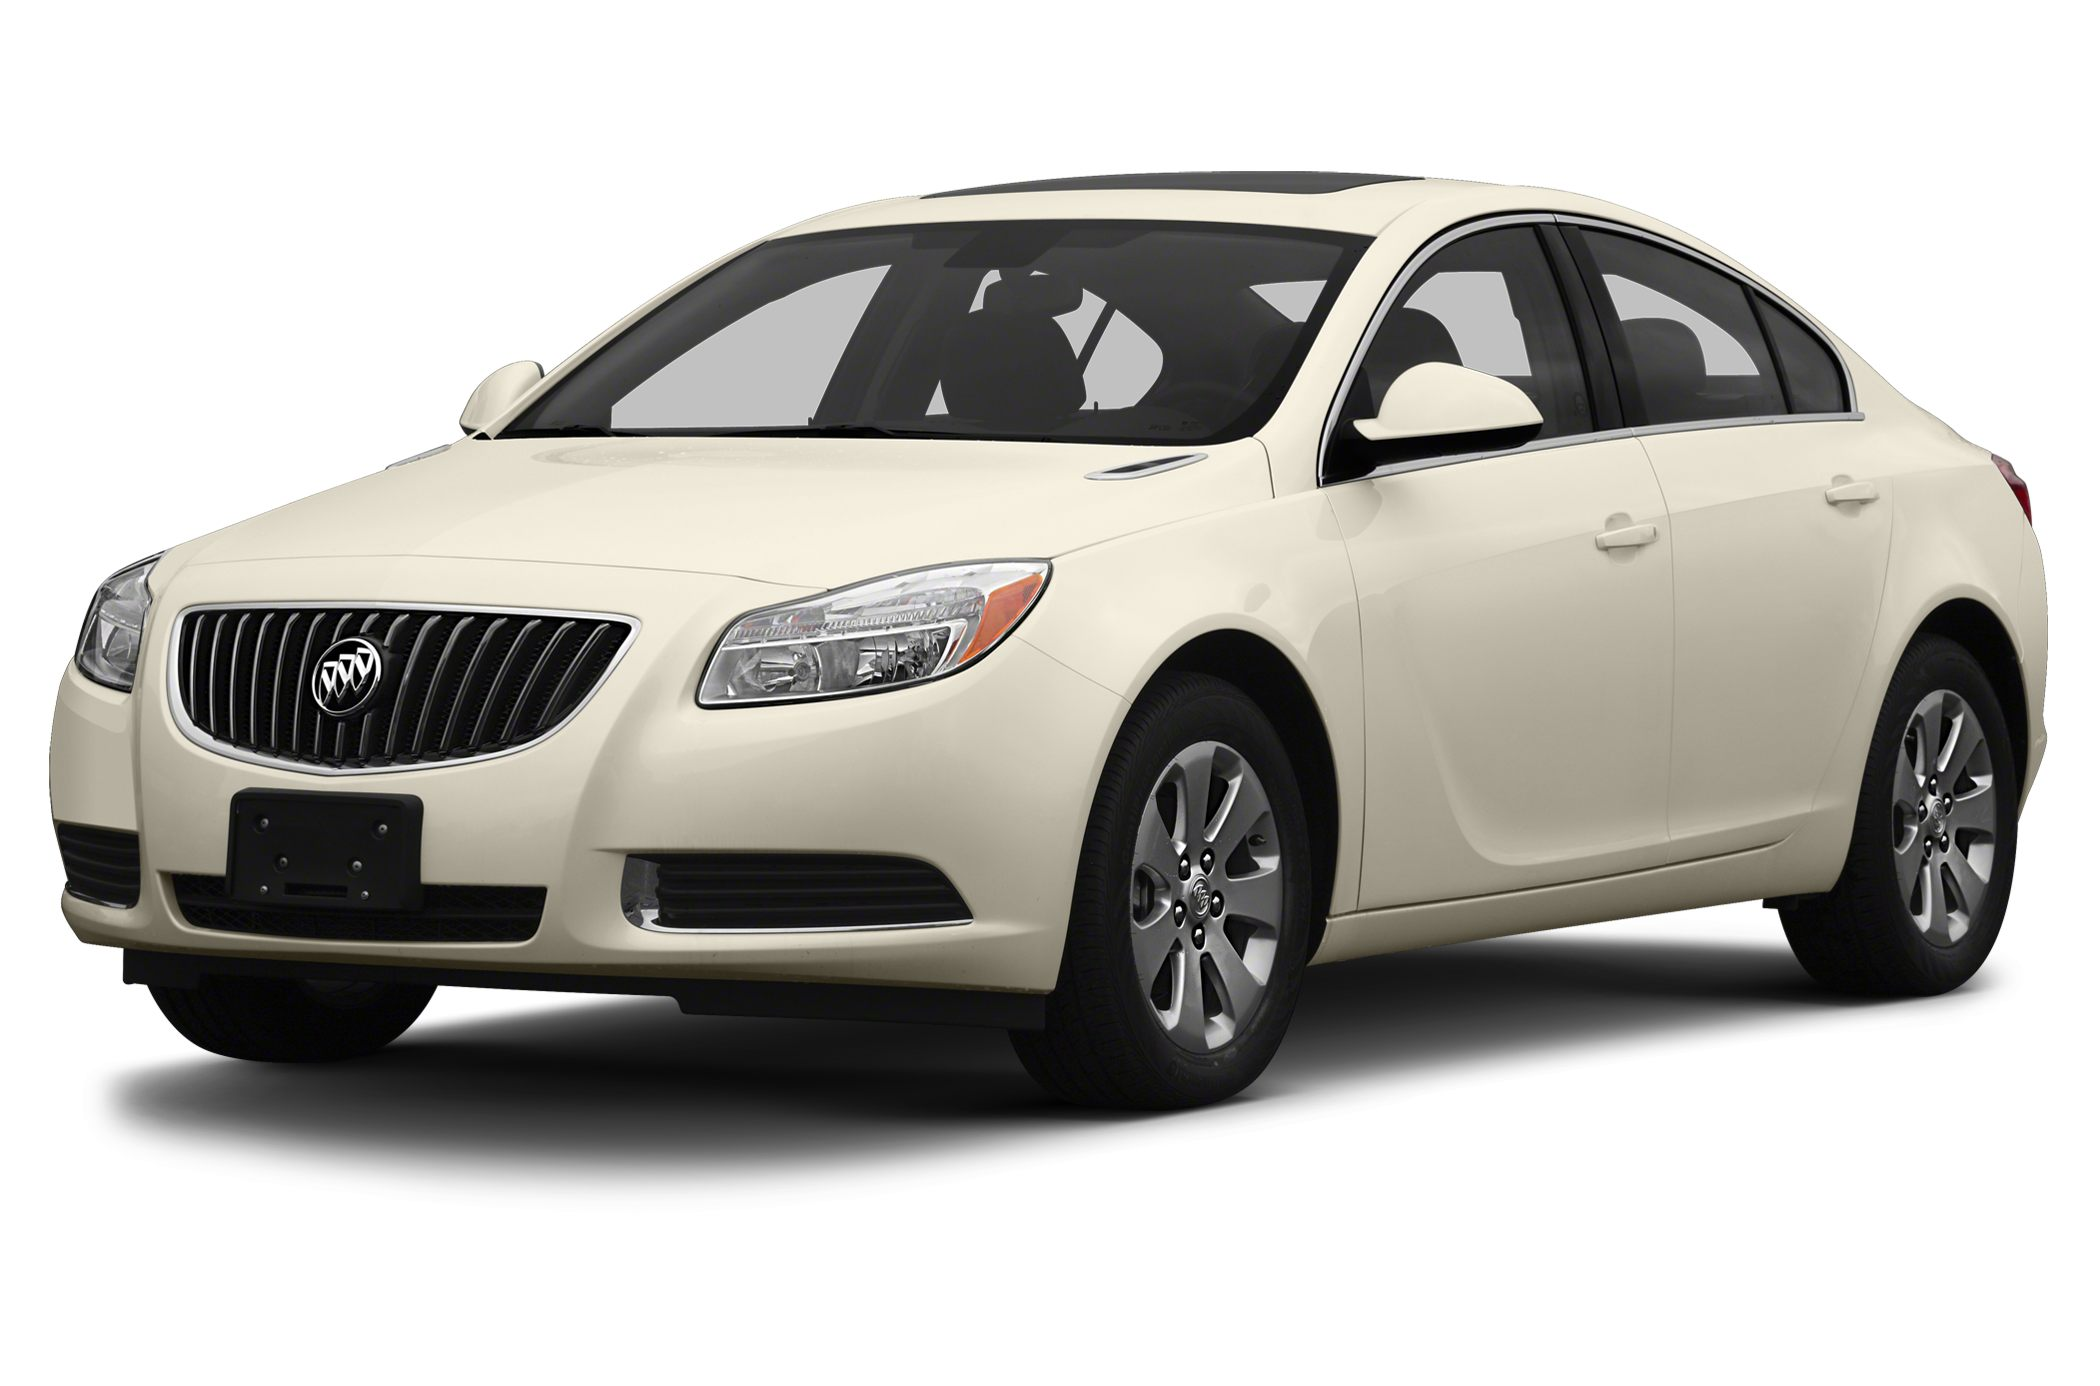 2013 Buick Regal Premium 1 Sedan for sale in Lebanon for $15,800 with 57,011 miles.